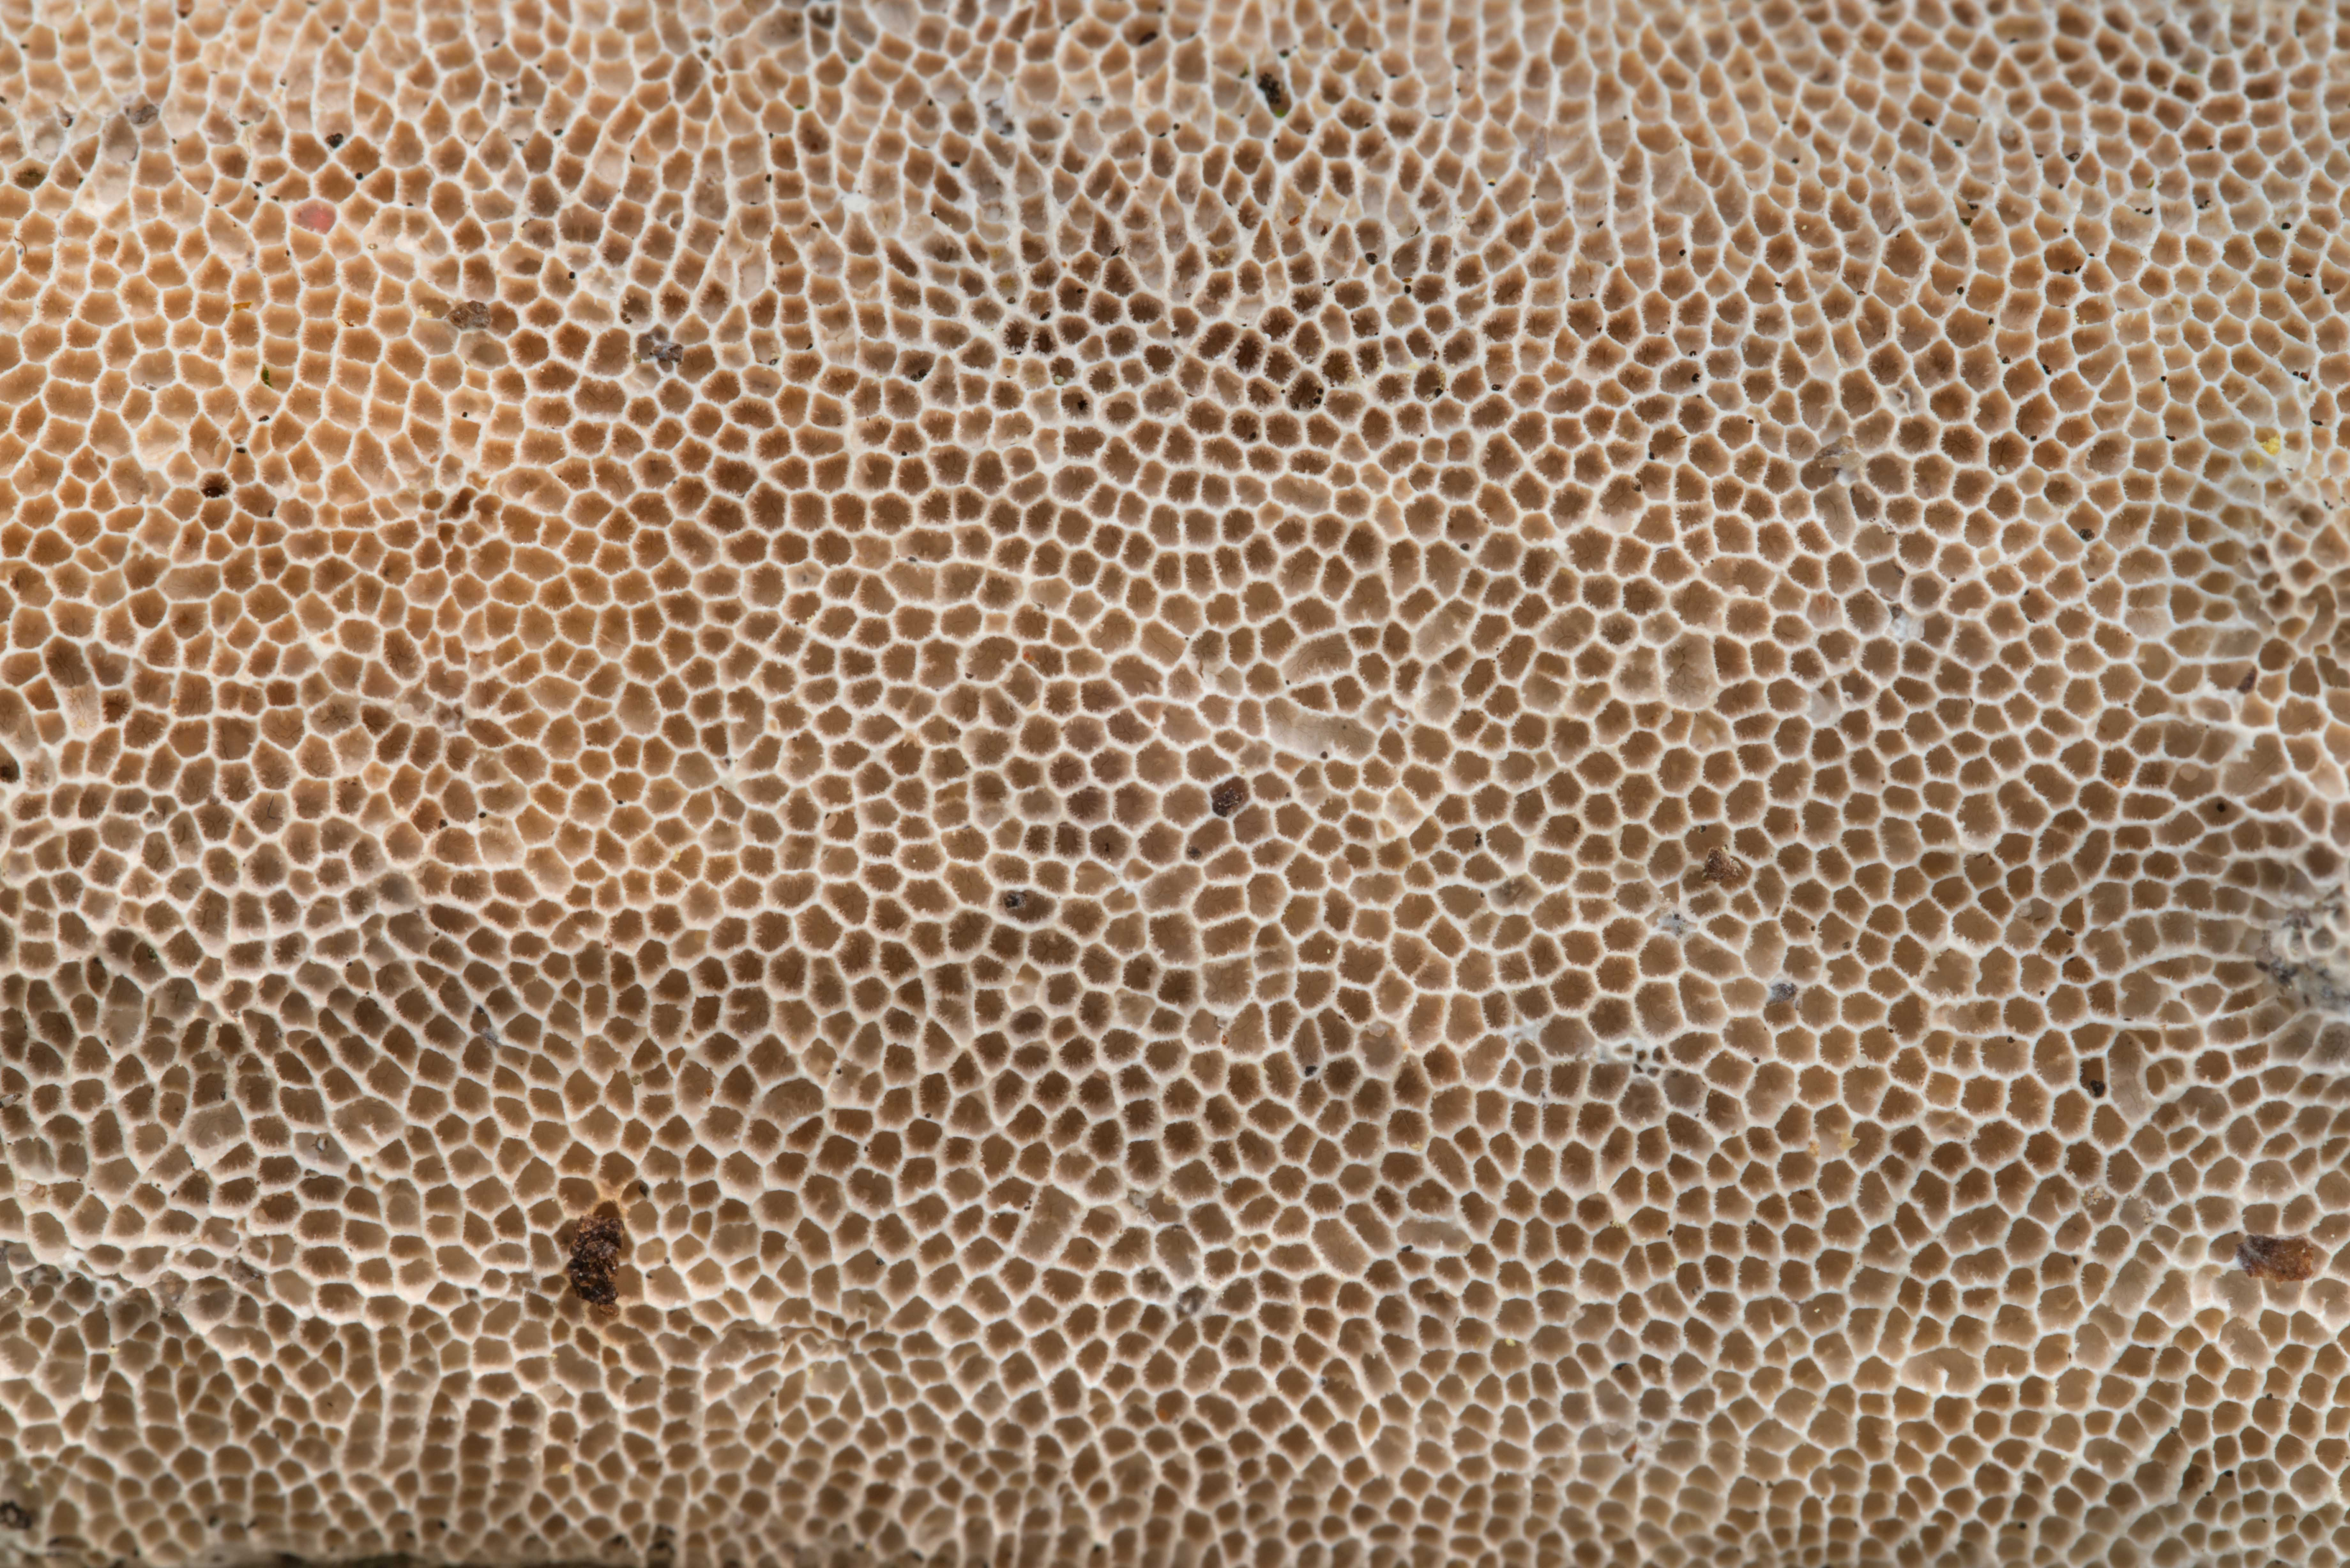 Keyword Photo 2234 27 Texture Of A Porous Mushroom Trametes